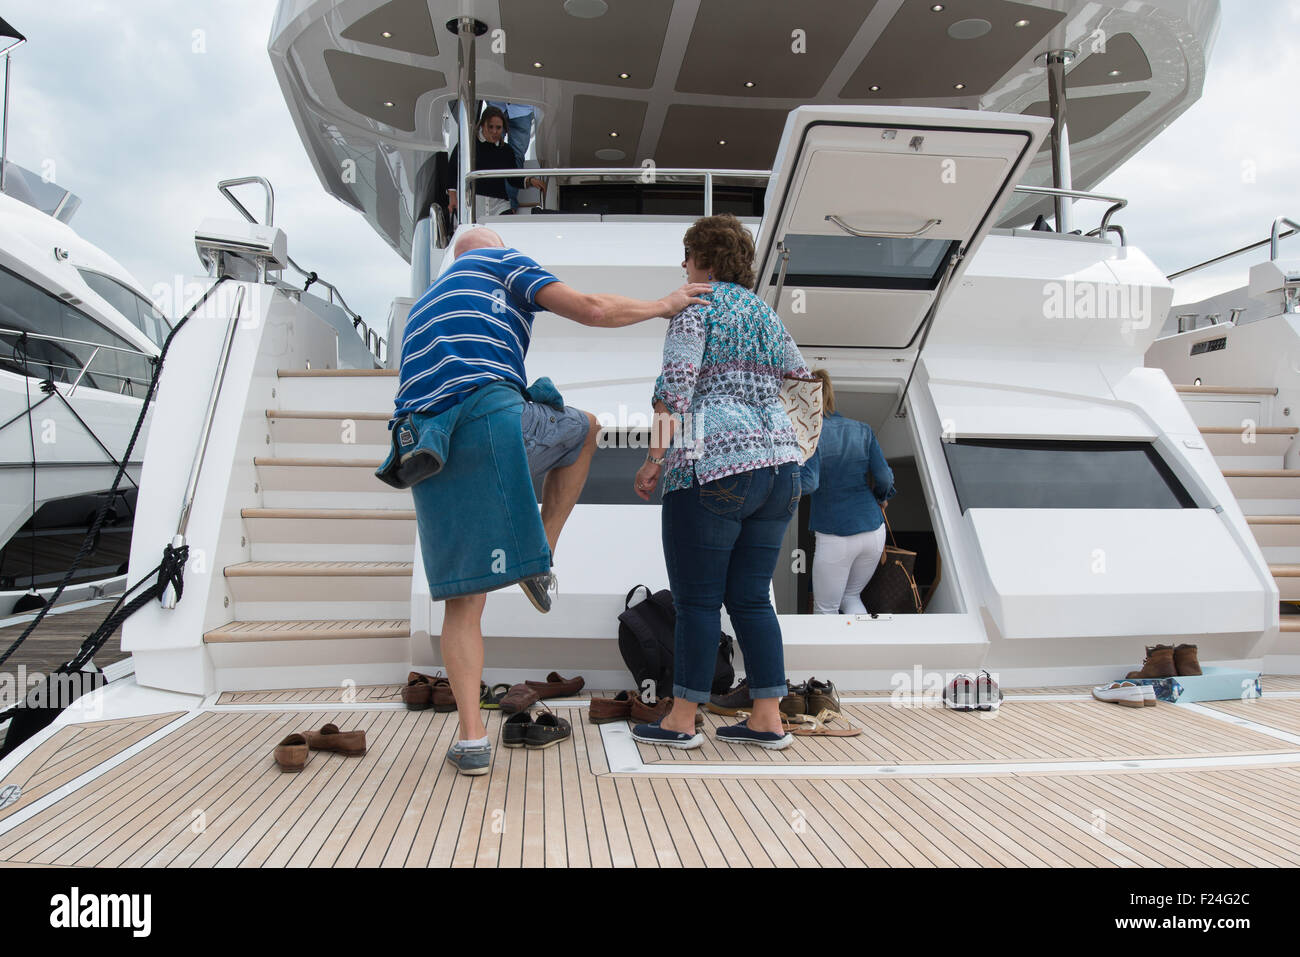 Southampton, UK. 11th September 2015. Southampton Boat Show 2015. Show visitors remove their shoes before boarding Stock Photo